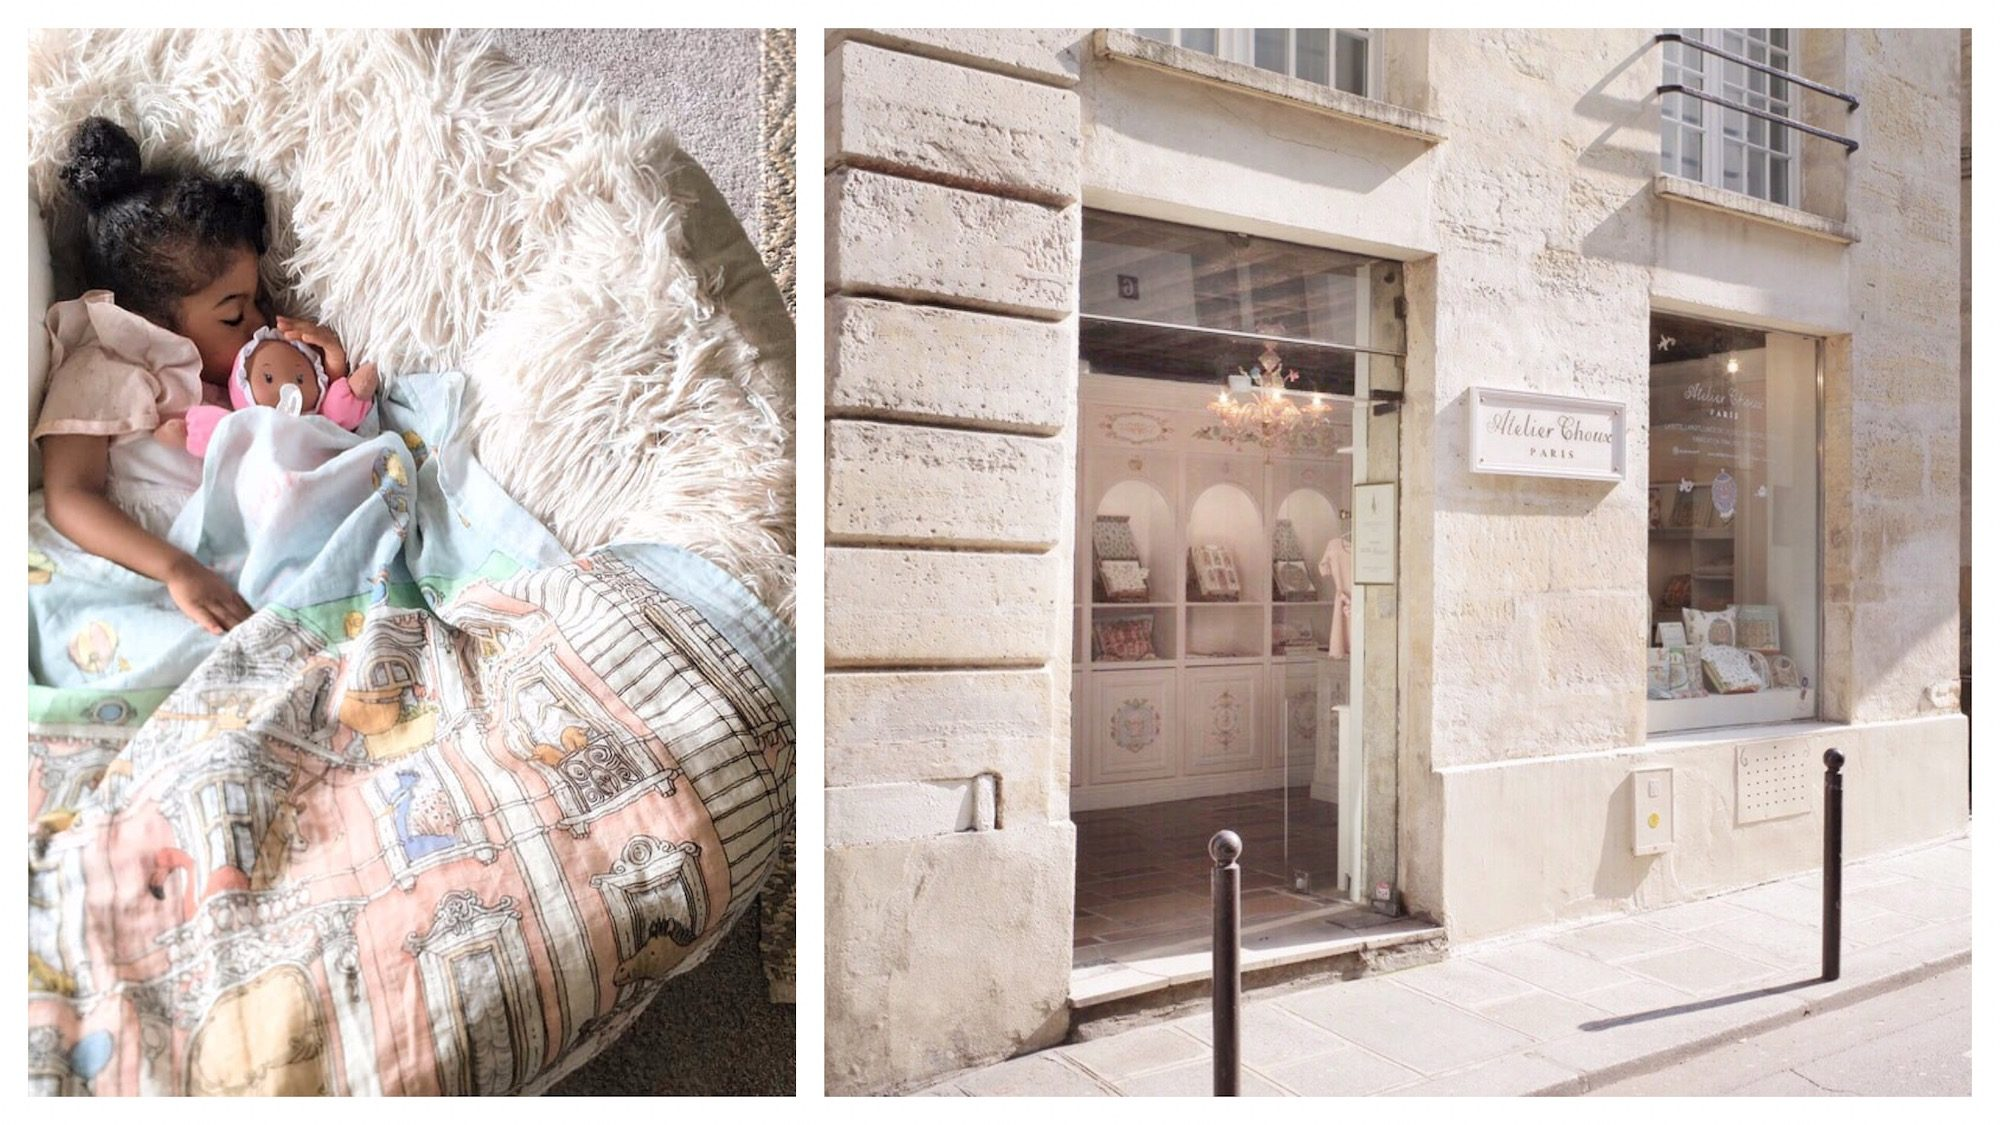 A little girl sleeping with her doll in a fluffy cushion chair (left). Outside Atelier Choux, a Parisian store for kids' clothing (right).